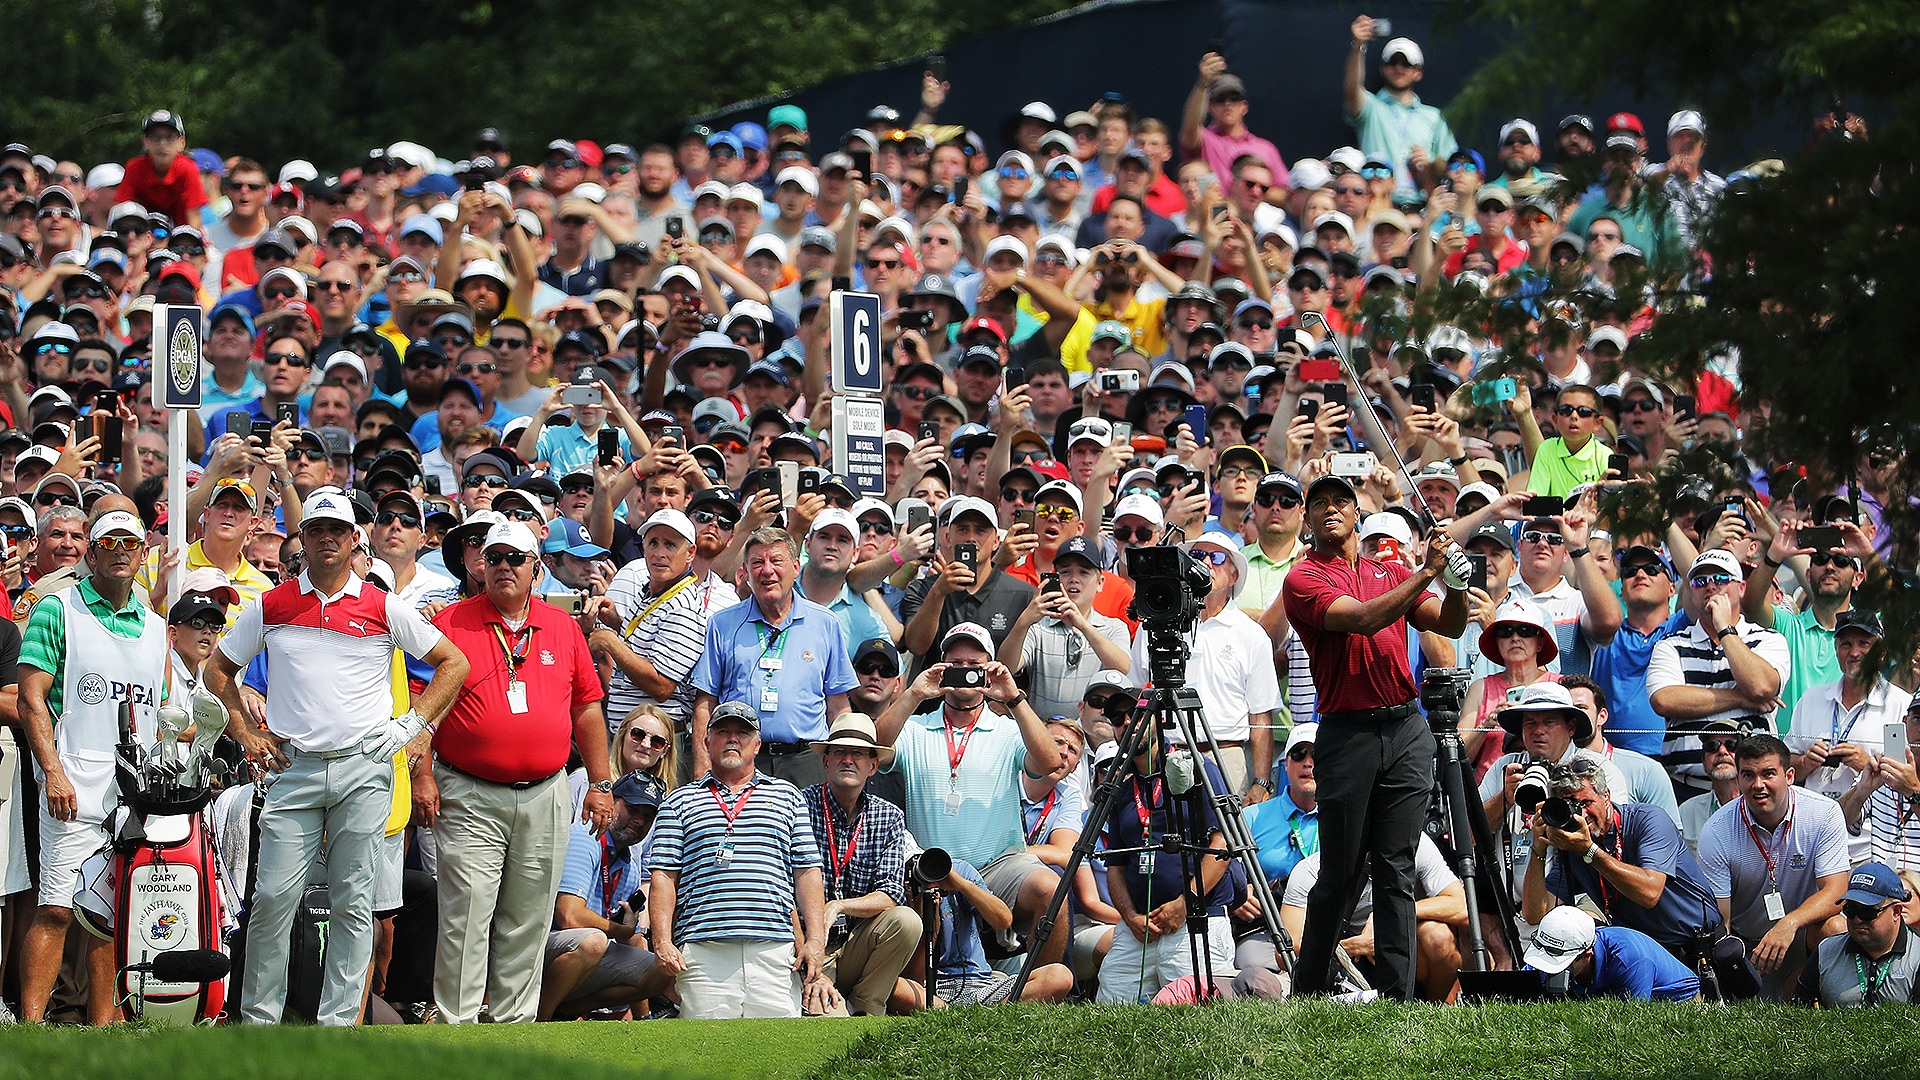 2018 PGA Championship - He did not win, but Tiger Woods was the star of the show